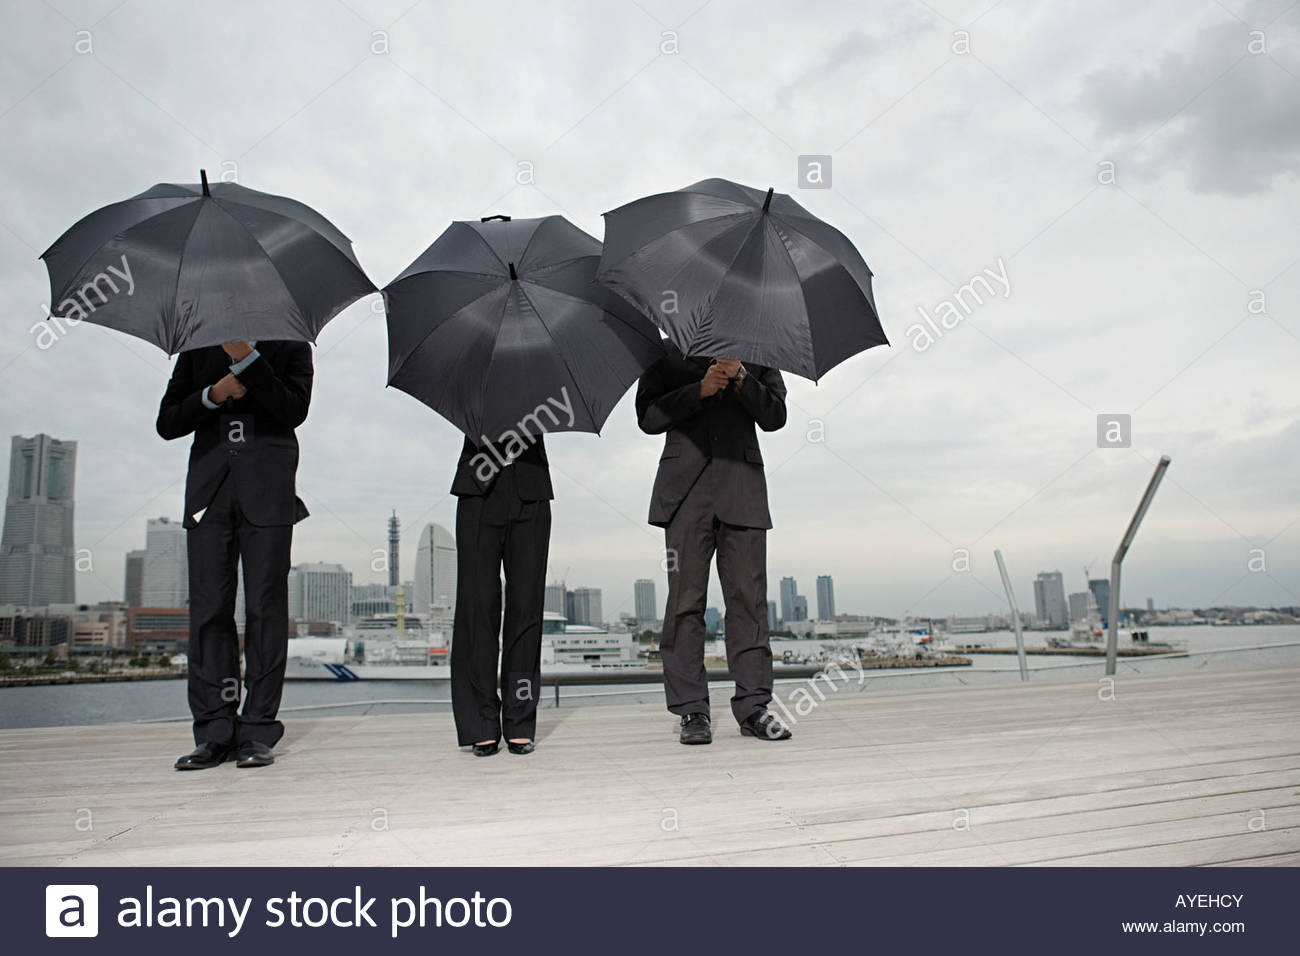 Businesspeople holding umbrellas - Stock Image